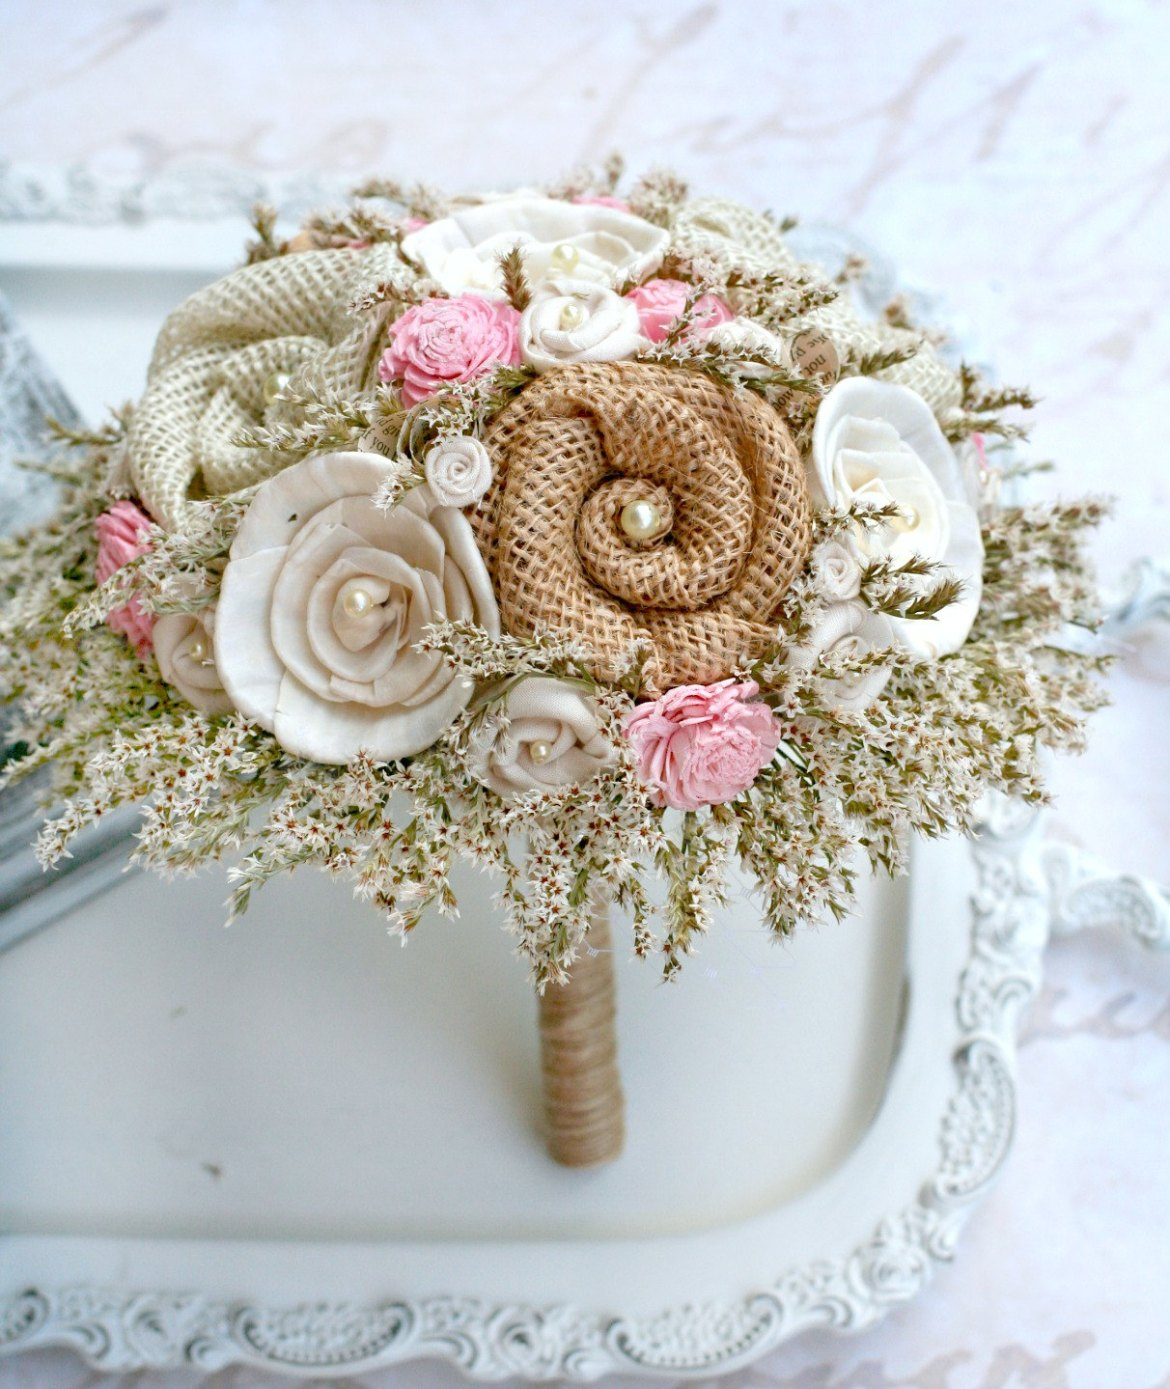 Where to Buy Sola Flowers for Weddings? - Ask Emmaline